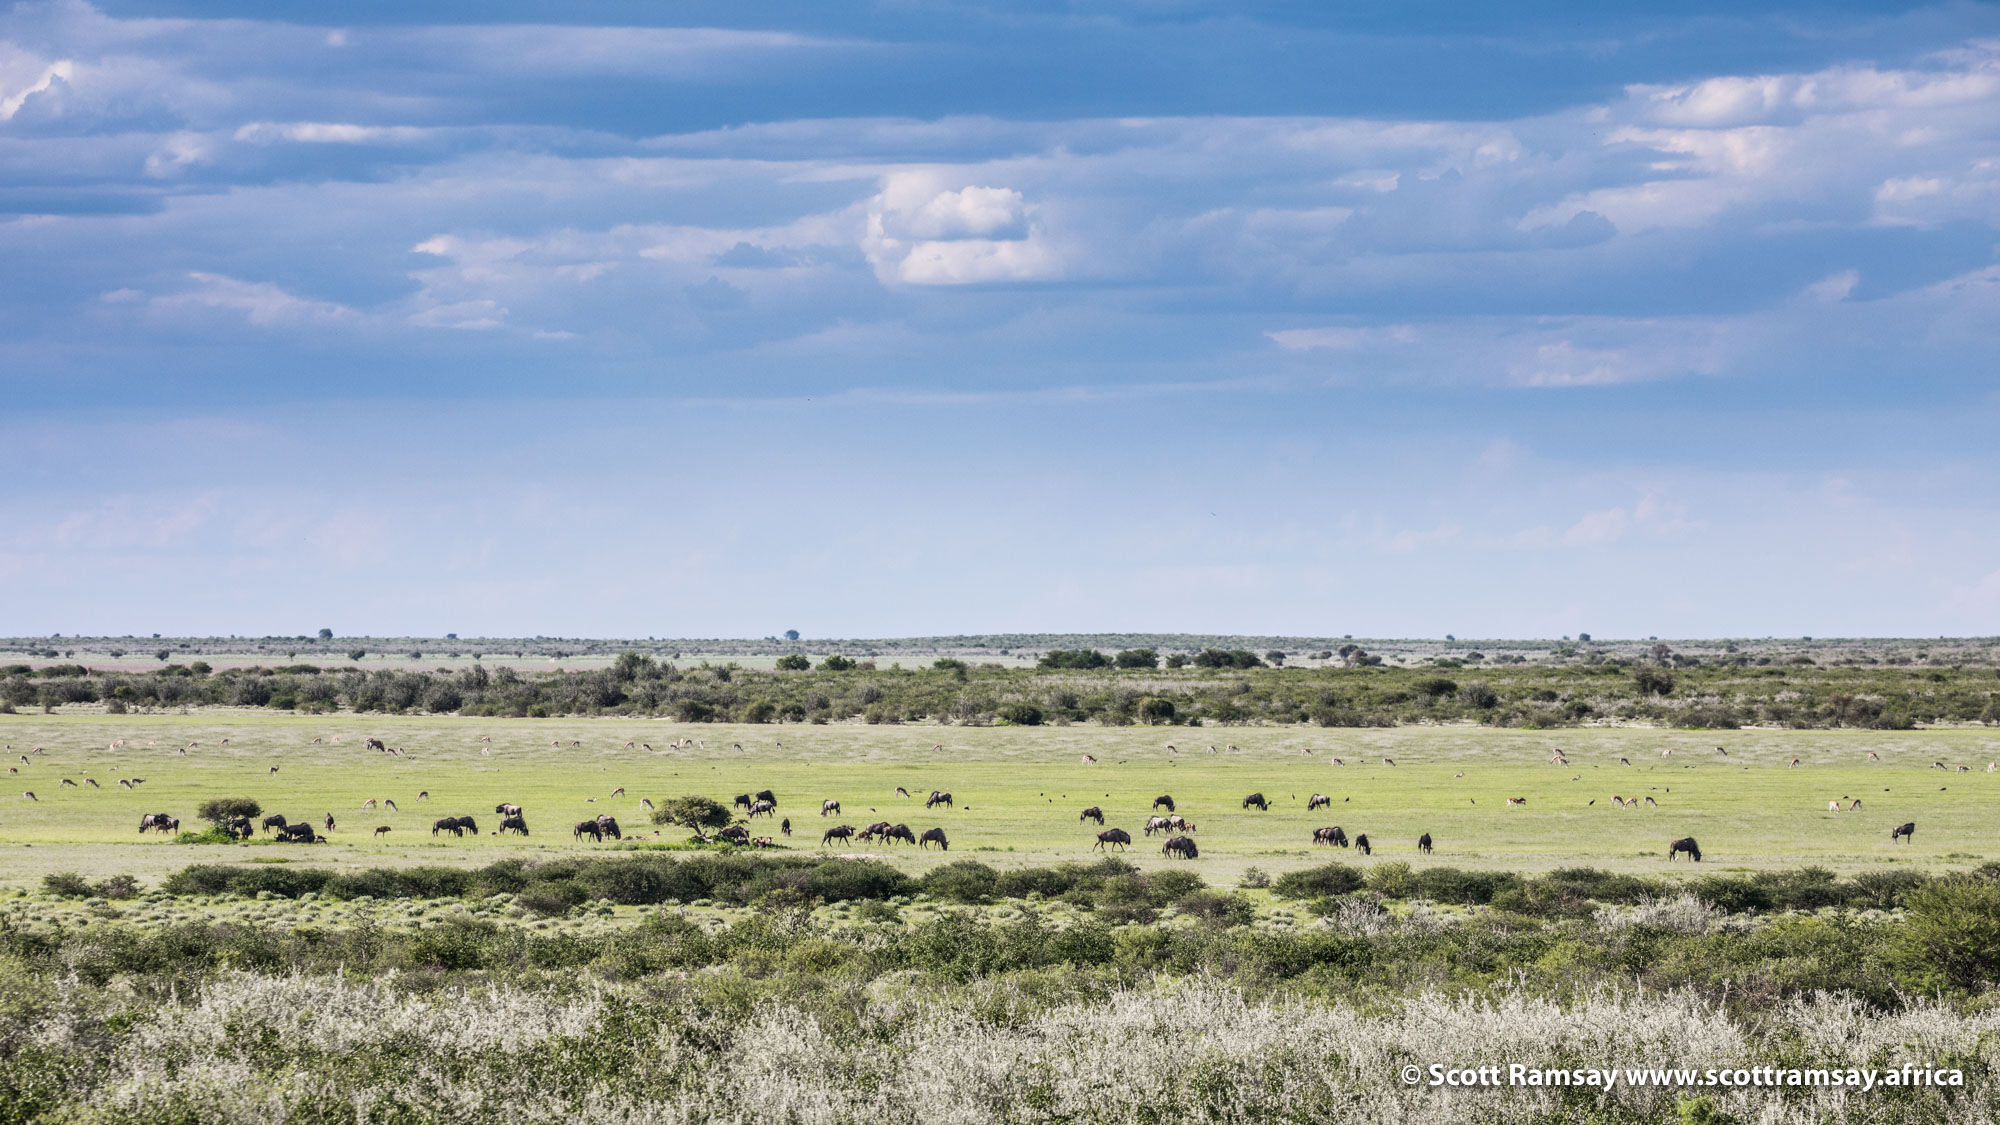 Blue wildebeest and zebra on Piper's Pan, mid-morning. Once numbering in their millions (only about 40 years ago), both species used to migrate across Botswana, following the grazing and rains. But starting in the 1960s and 70s, when the government (at insistence by the European Union) built veterinary fences to separate cattle from wild animals, the wildebeest populations in particular were decimated in their hundreds of thousands. Unable to find their way around the fences, thousands were trapped against the wires, unable to find grazing or water. Today most wildebeest are sedentary, meaning they don't migrate, and have to rely on much smaller areas for grazing and water (and consequently, aren't able to breed as successfully, due to limited resources).